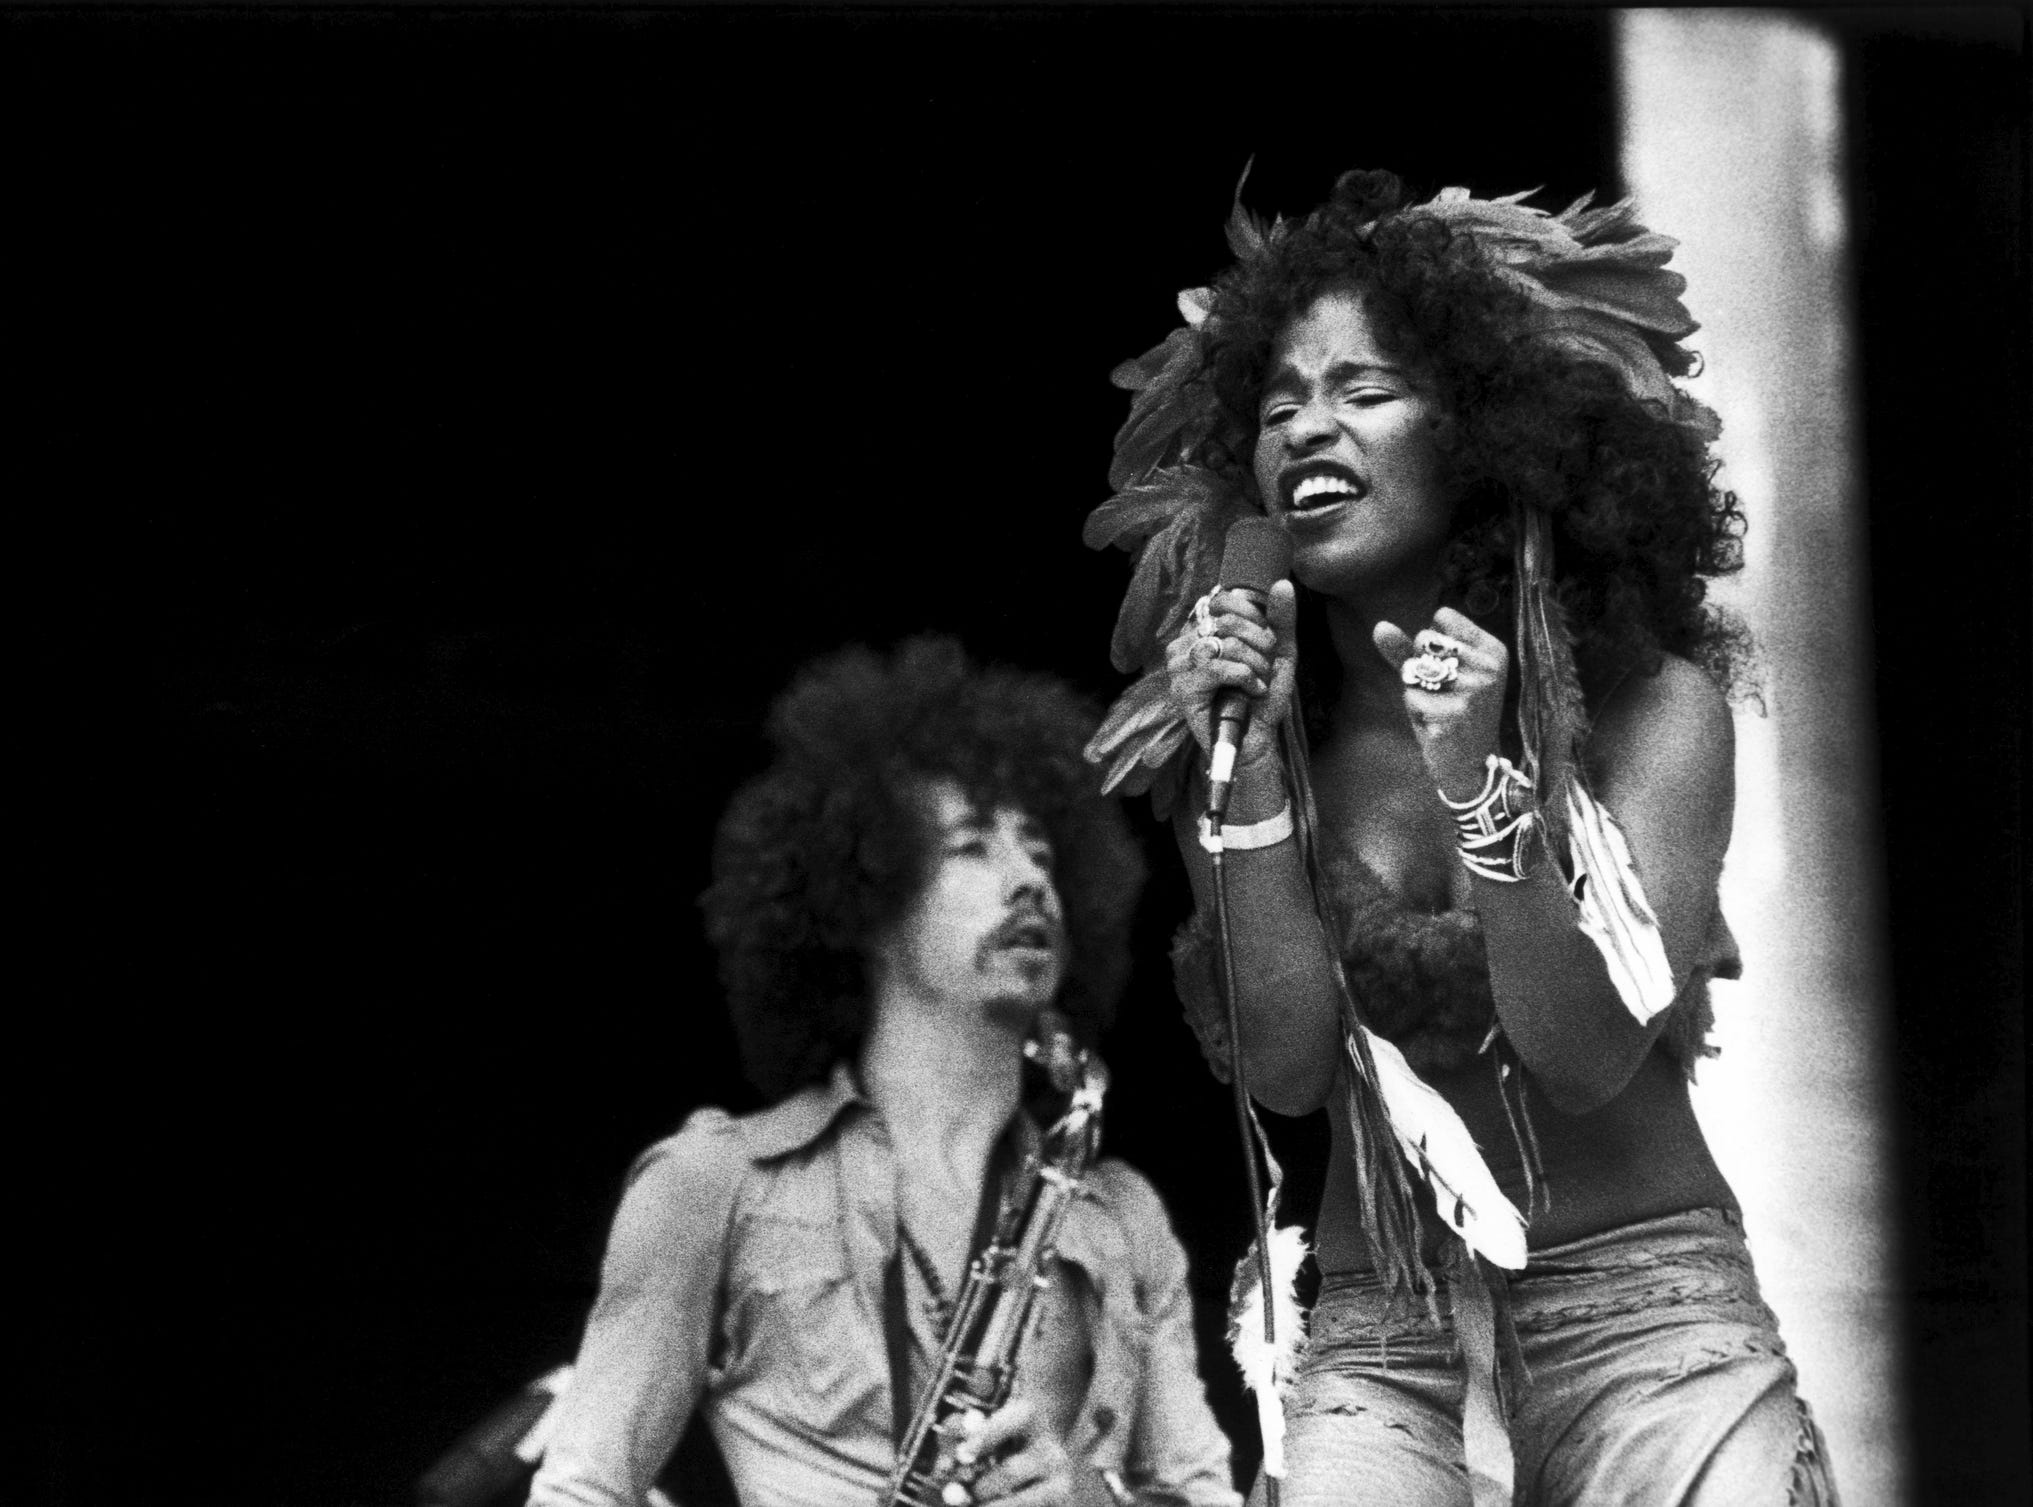 Chaka Khan performs performs with Rufus on stage at Midsummer Music, Wembley Stadium, on June 25, 1975.